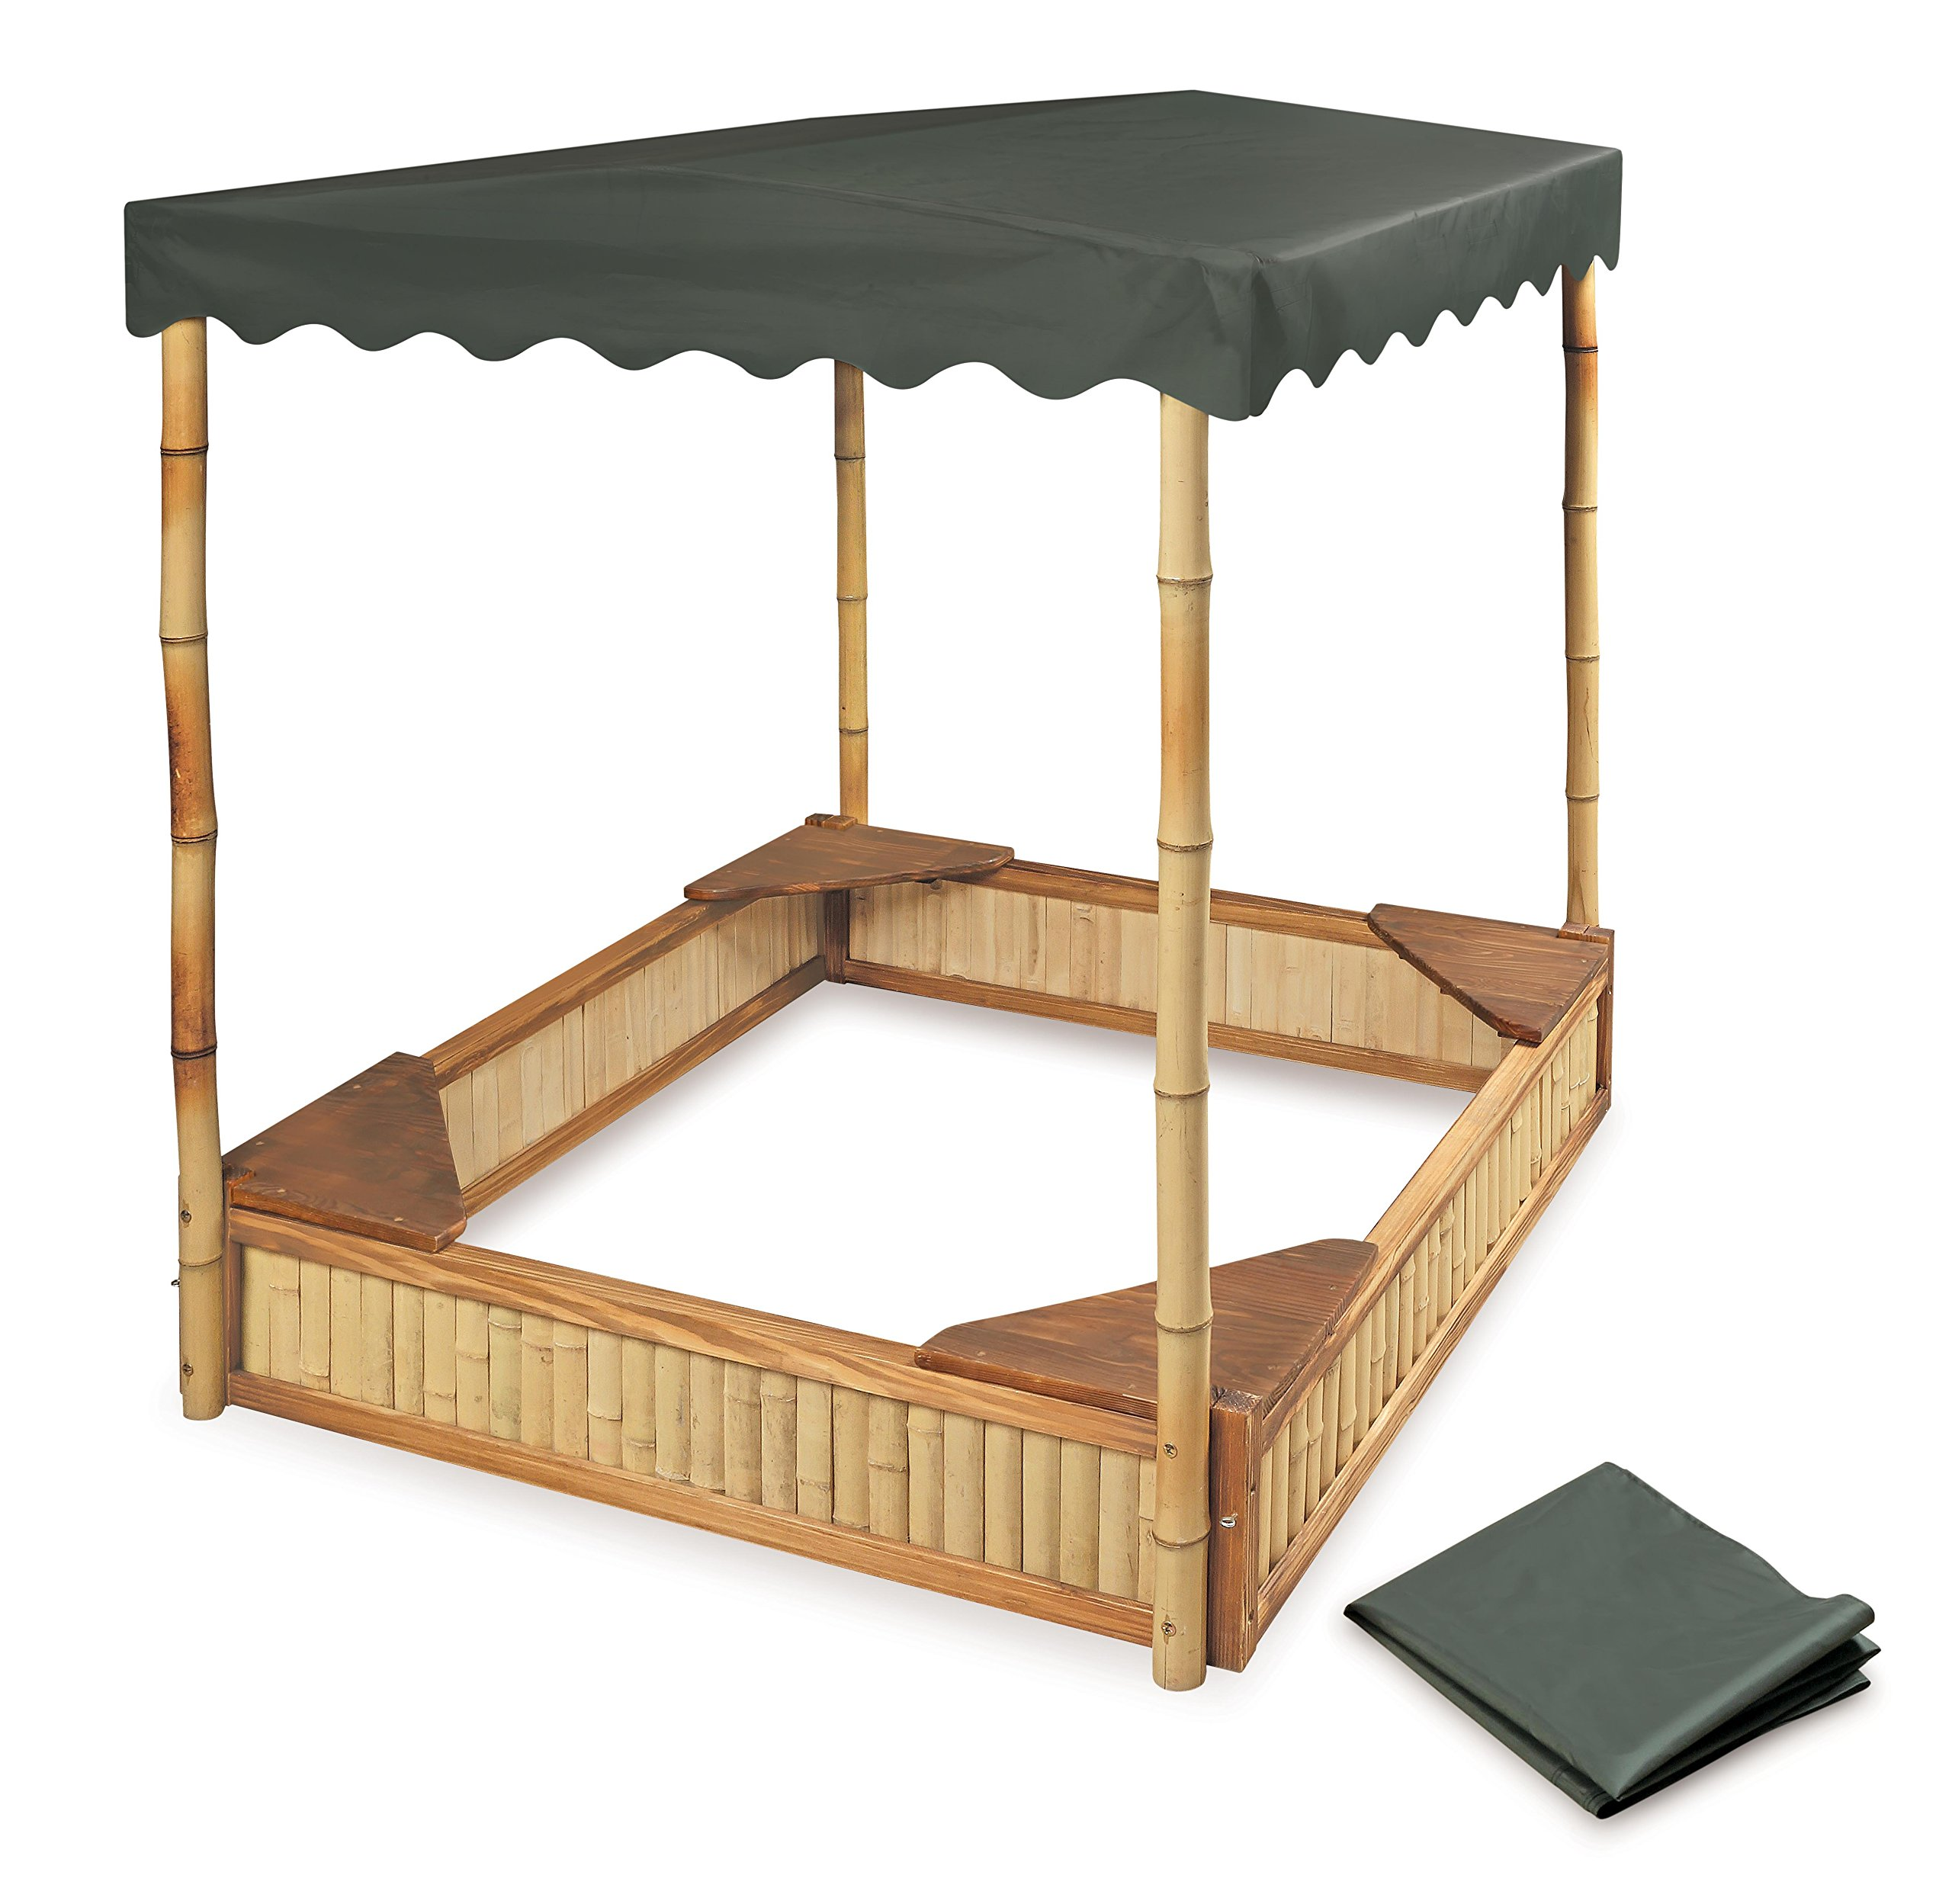 Badger Basket Tropical Fun Square Bamboo/Wood Outdoor Sandbox with Fabric Canopy/Cover and Seats, Natural/Green by Badger Basket (Image #4)